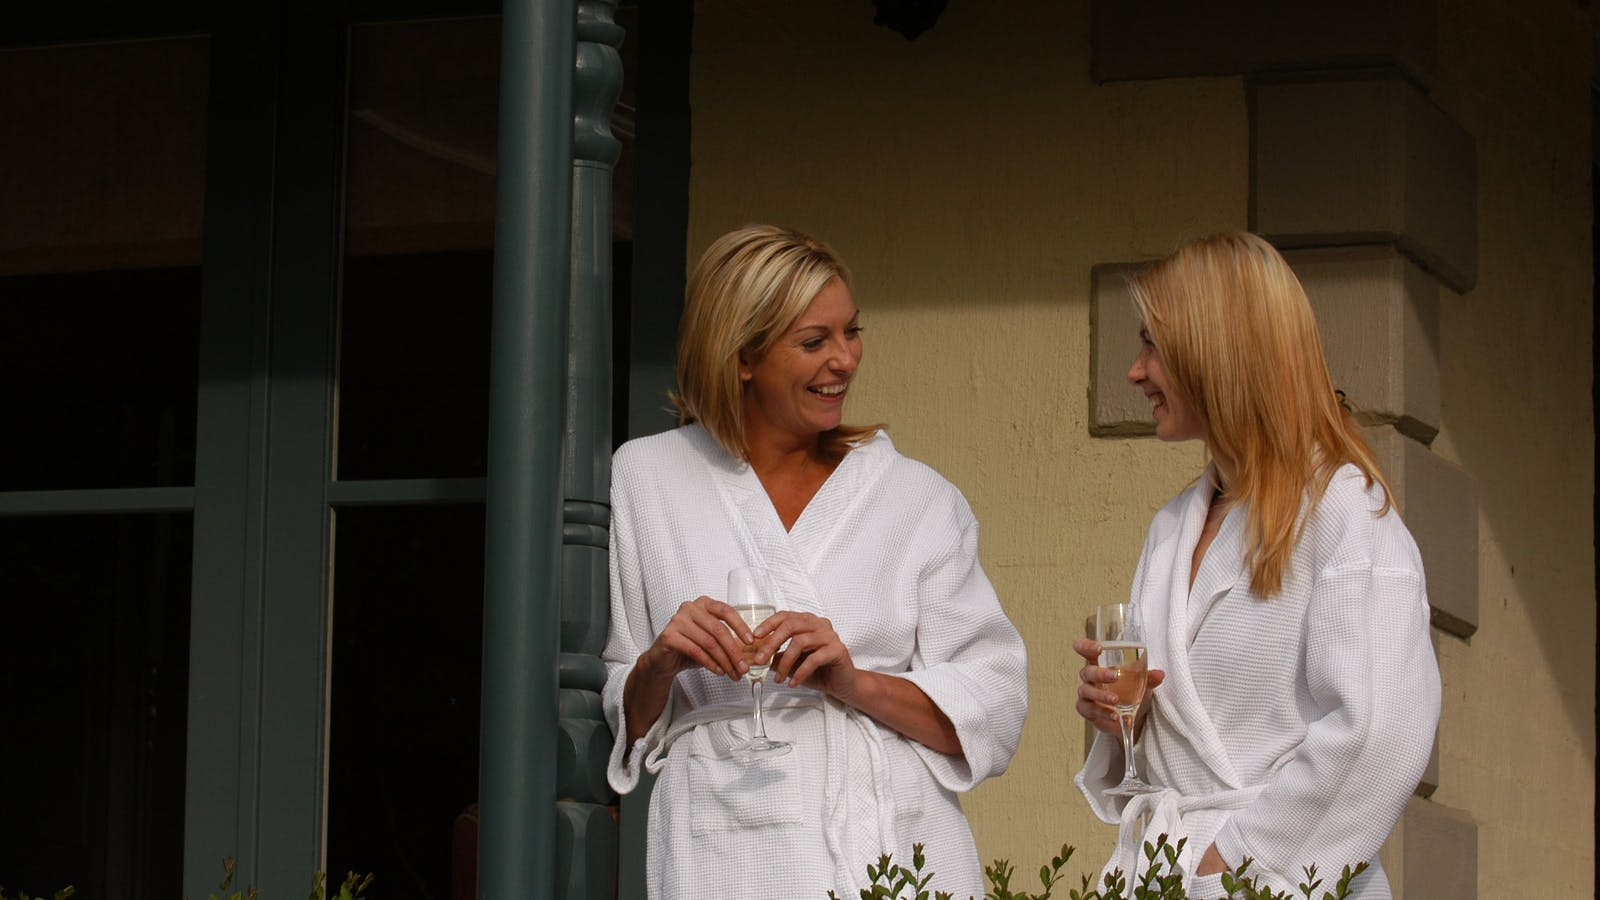 Two Ladies at Wellness Retreat